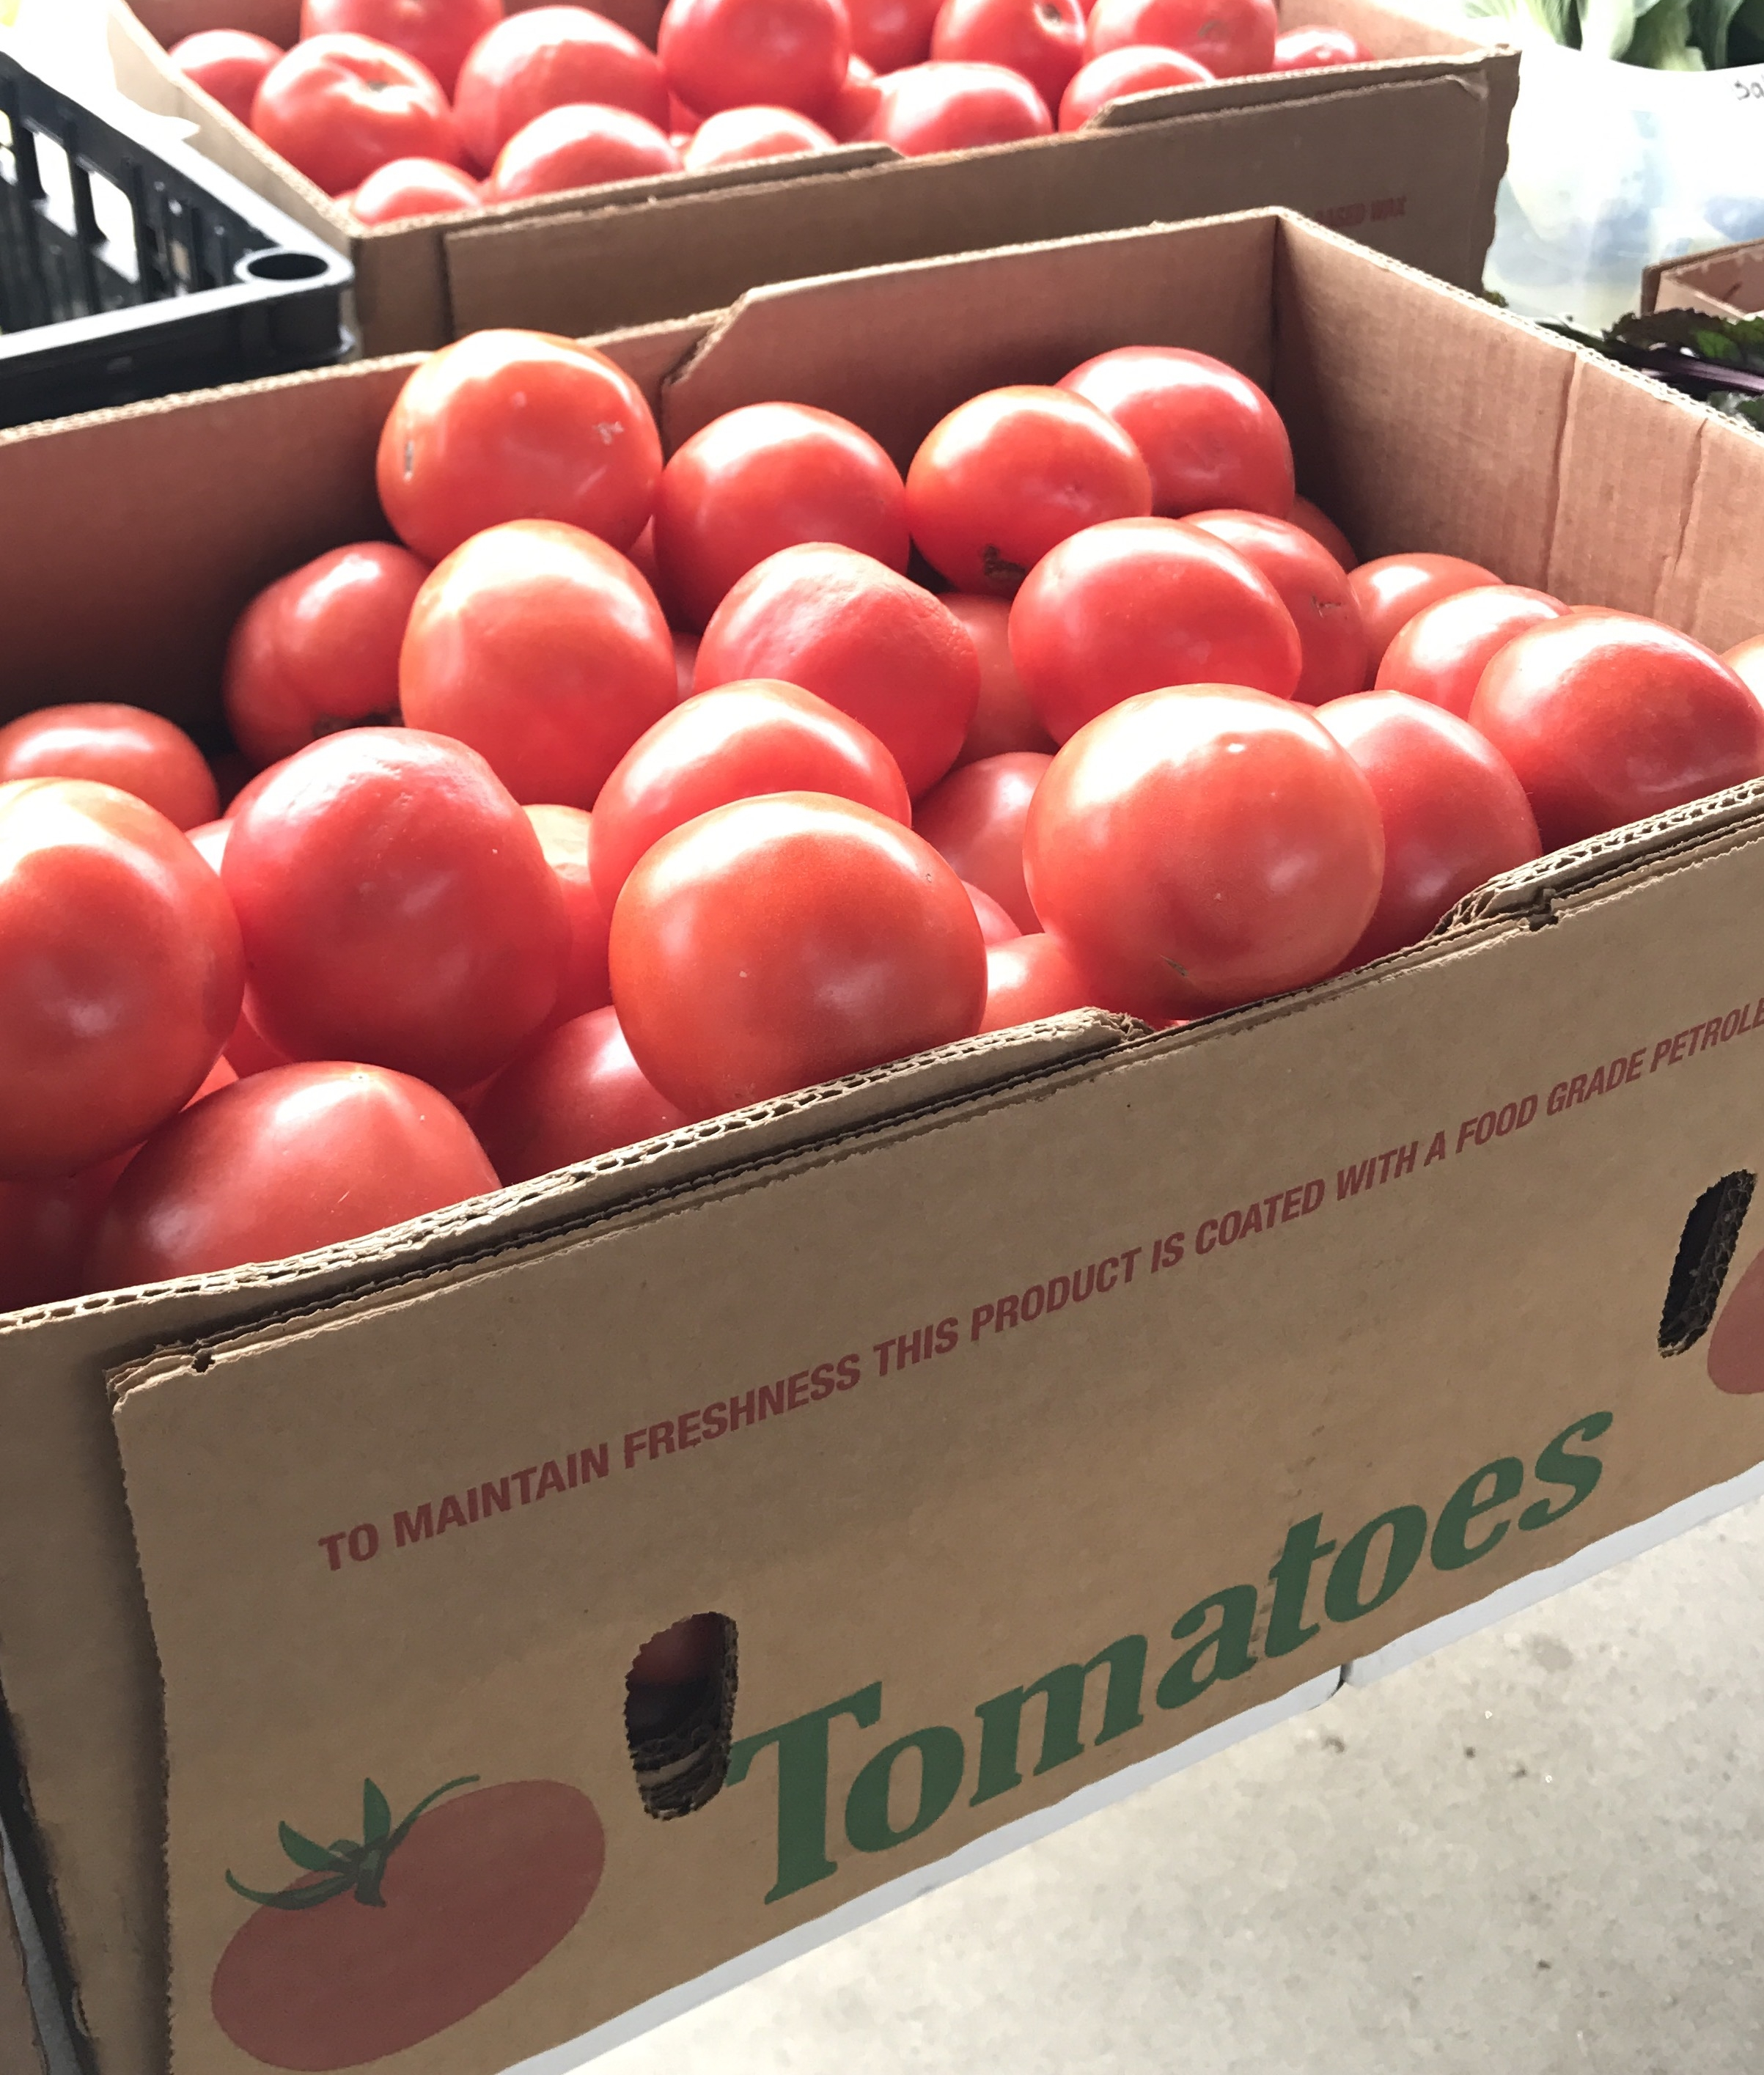 Buying produce in bulk is a great way to support farmers with overstock, and get more pounds for your station.